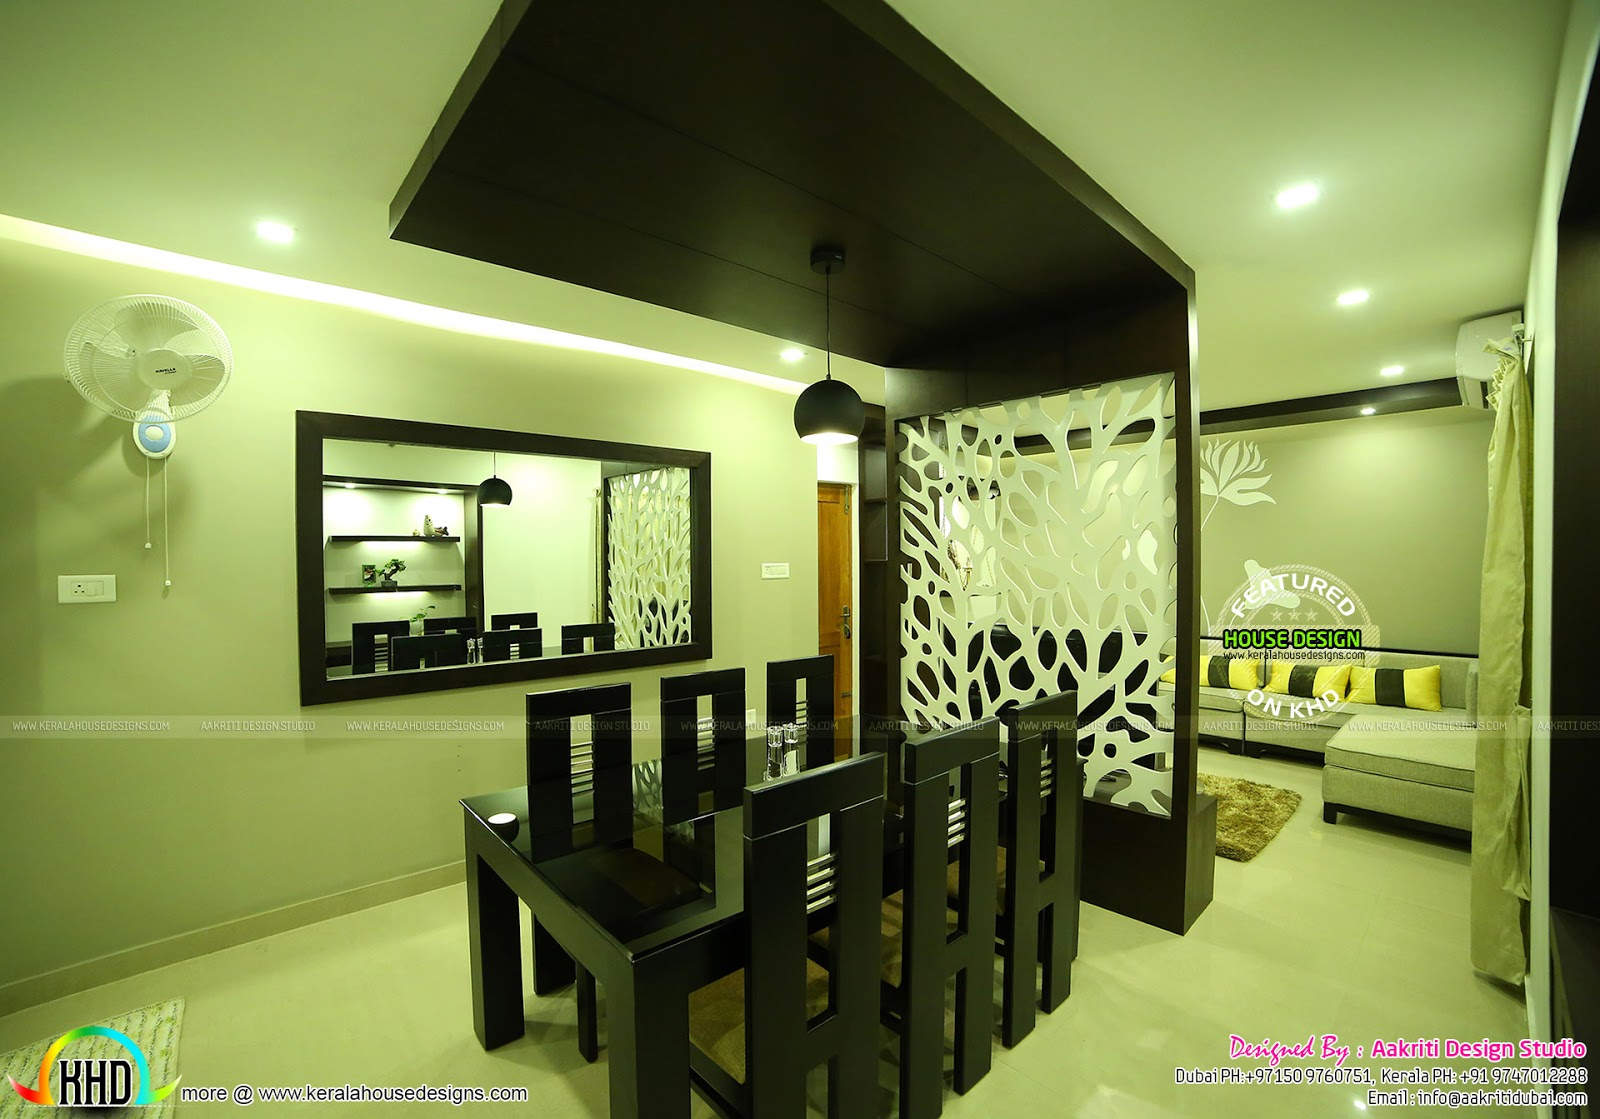 Finished interior photos from kannur kerala kerala home for Kerala interior designs